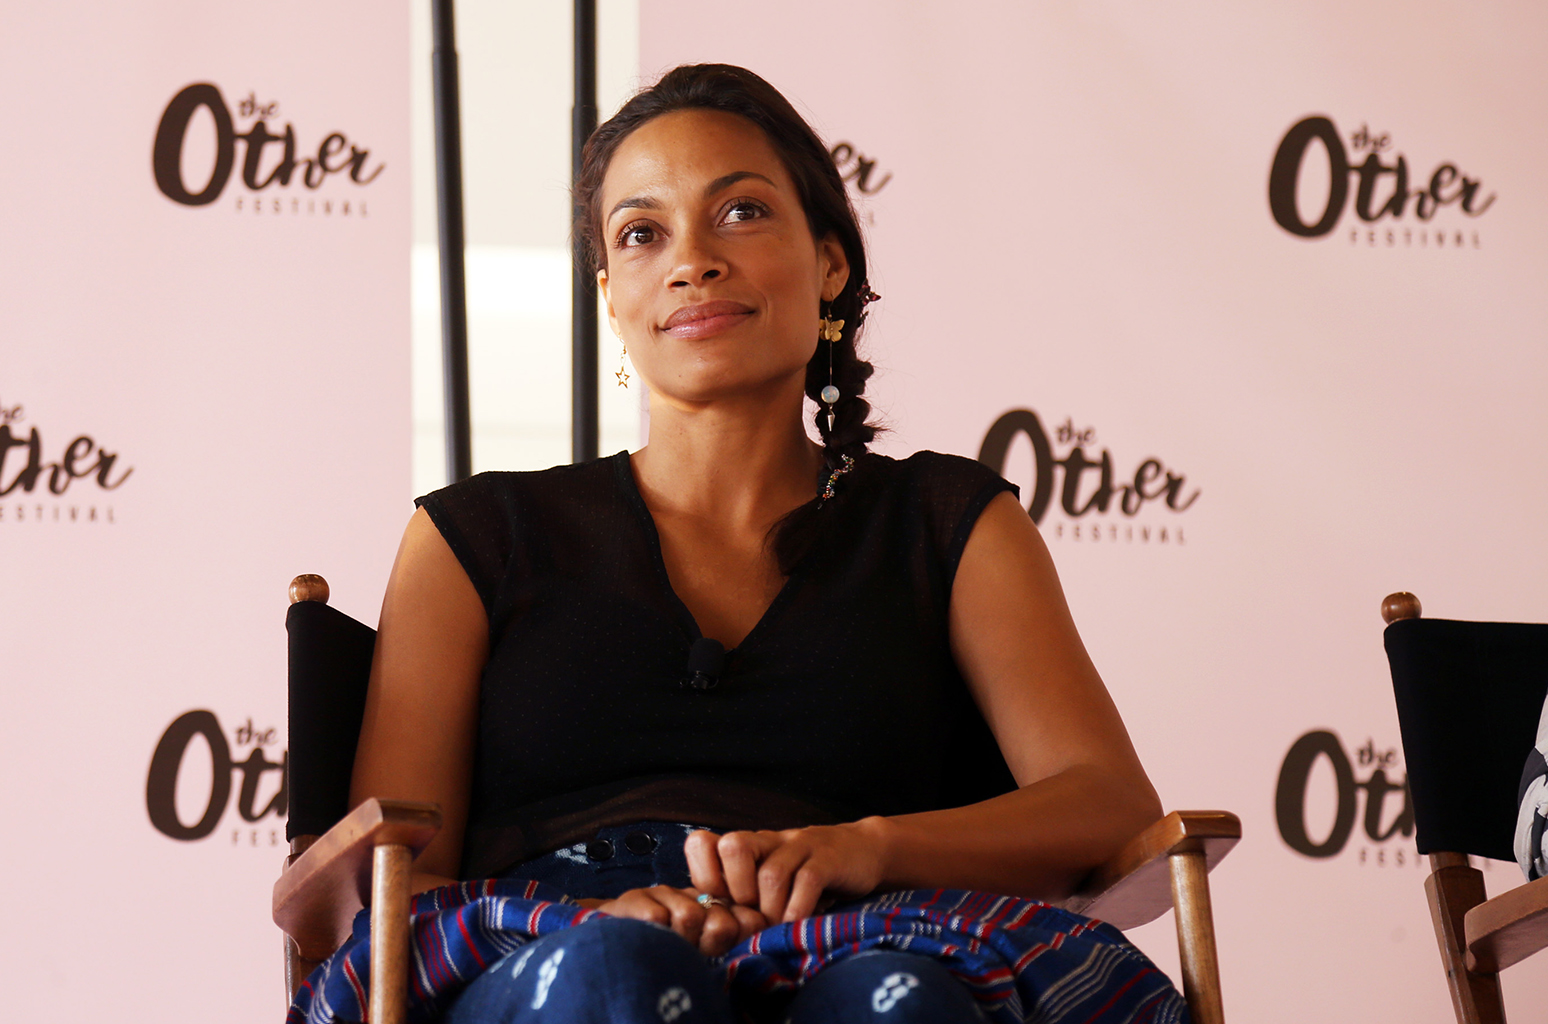 NEW YORK, NY - JUNE 11: Rosario Dawson appears onstage during The Other Festival at Spring Studios Brooklyn on June 11, 2016 in New York City. (Photo by Johnny Nunez/WireImage)